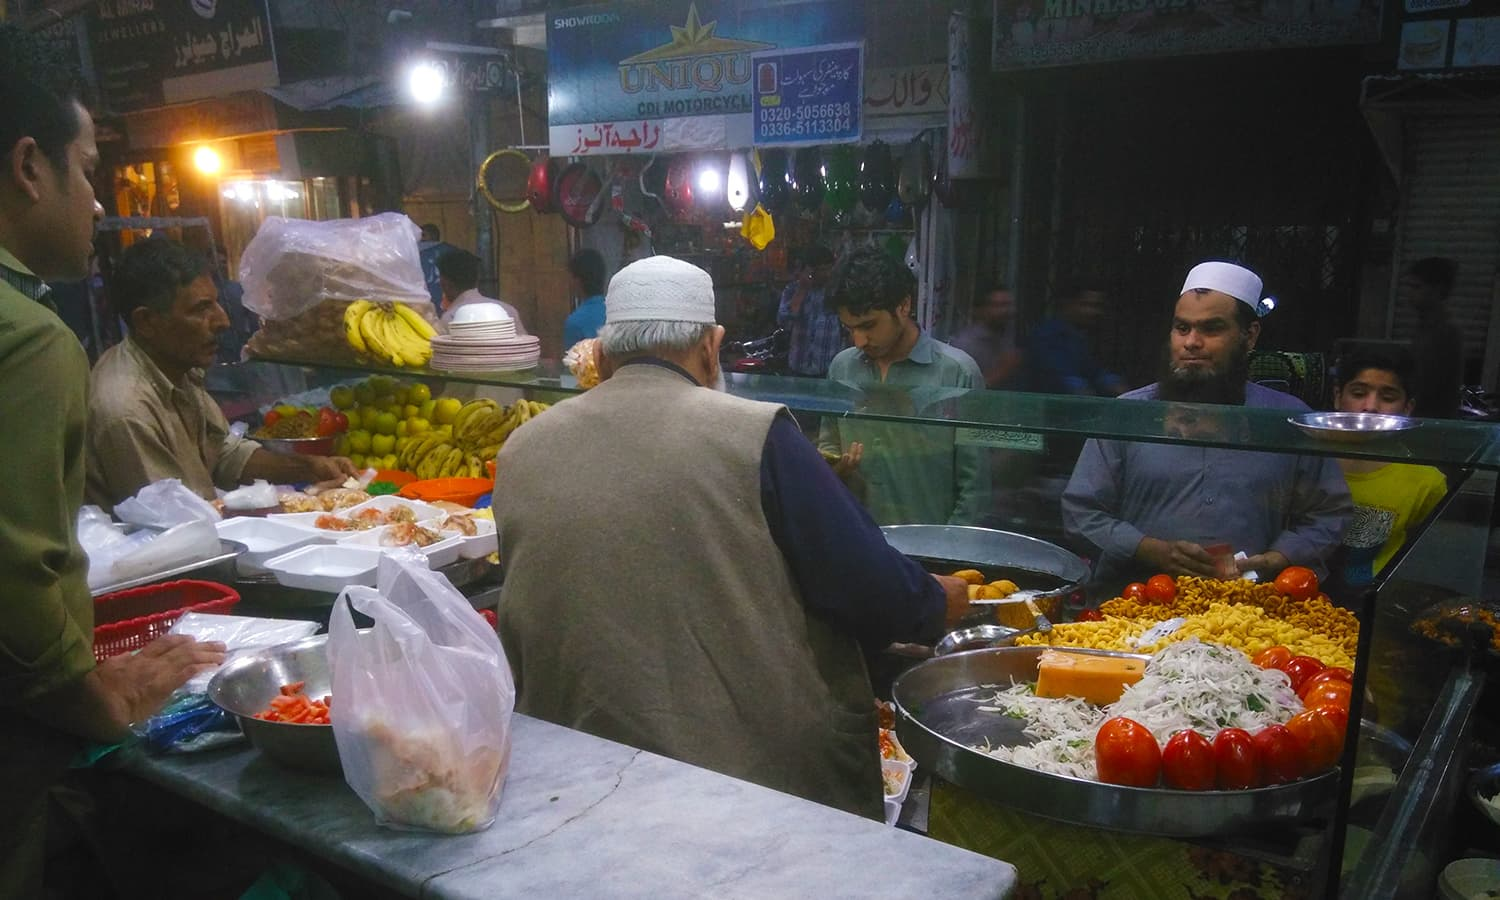 Trying the food at Bhabra Bazaar should also definitely be in your to-do list. I stopped at one of the shops, Lajawab Dahi Bhallay Centre.